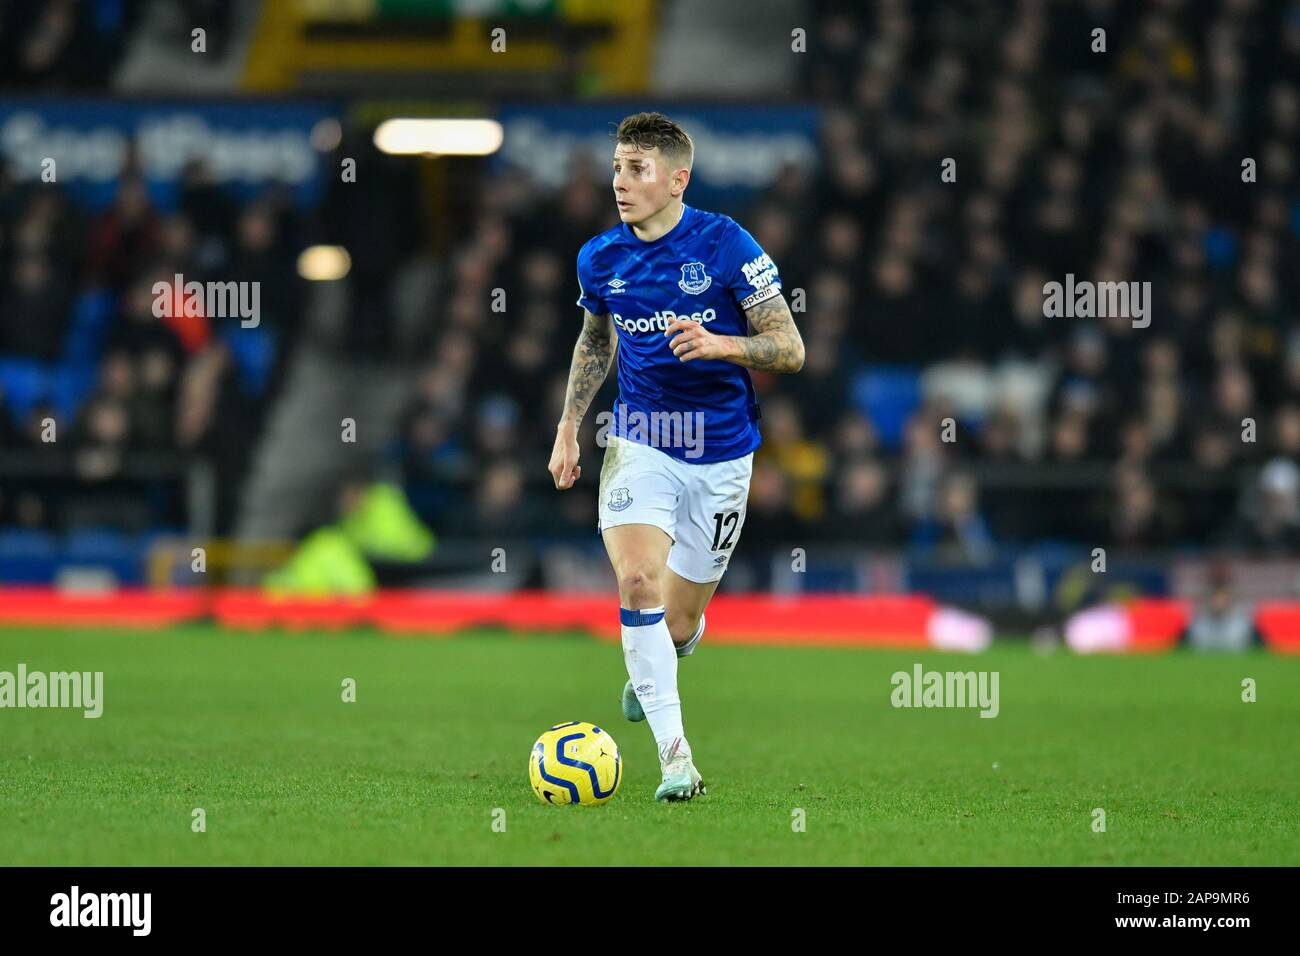 21st January 2020 Goodison Park Liverpool England Premier League Everton V Newcastle United Lucas Digne 12 Of Everton Runs Forward With The Ball Stock Photo Alamy